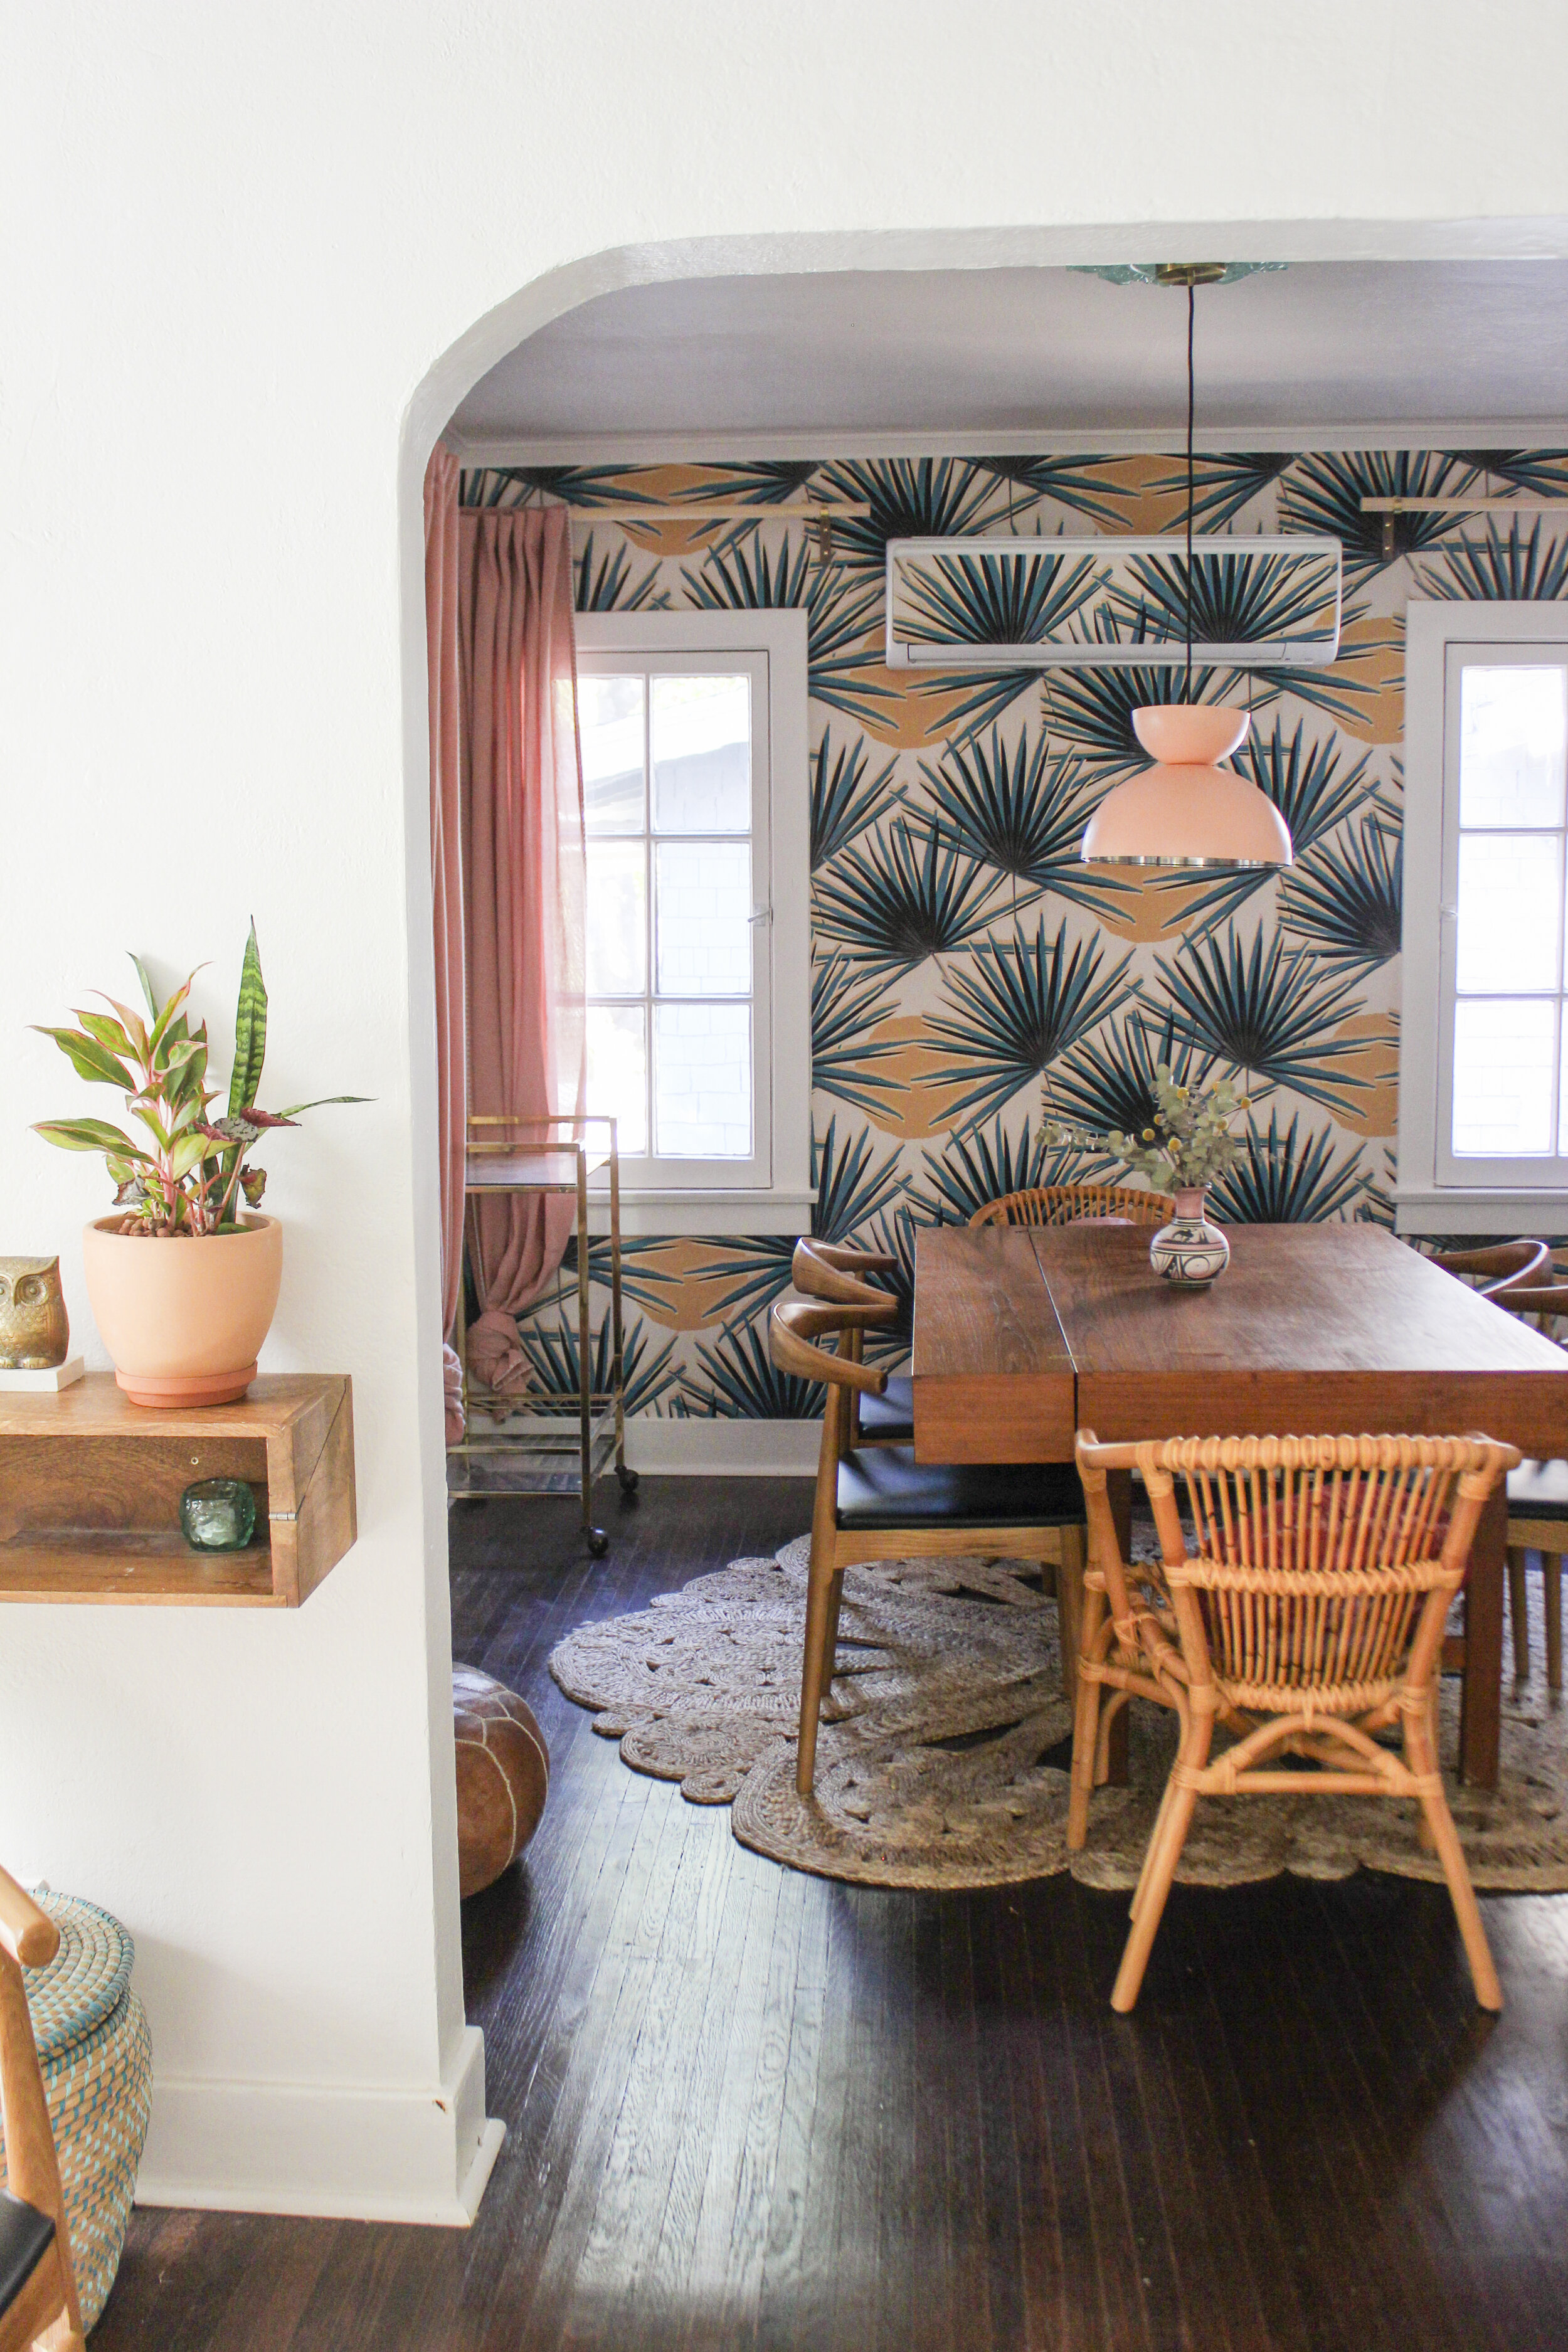 See my dinning room Weekend Refresh for Tastemade Home! - featuring my Palm Deco wallpaper and a few home hacks by me!